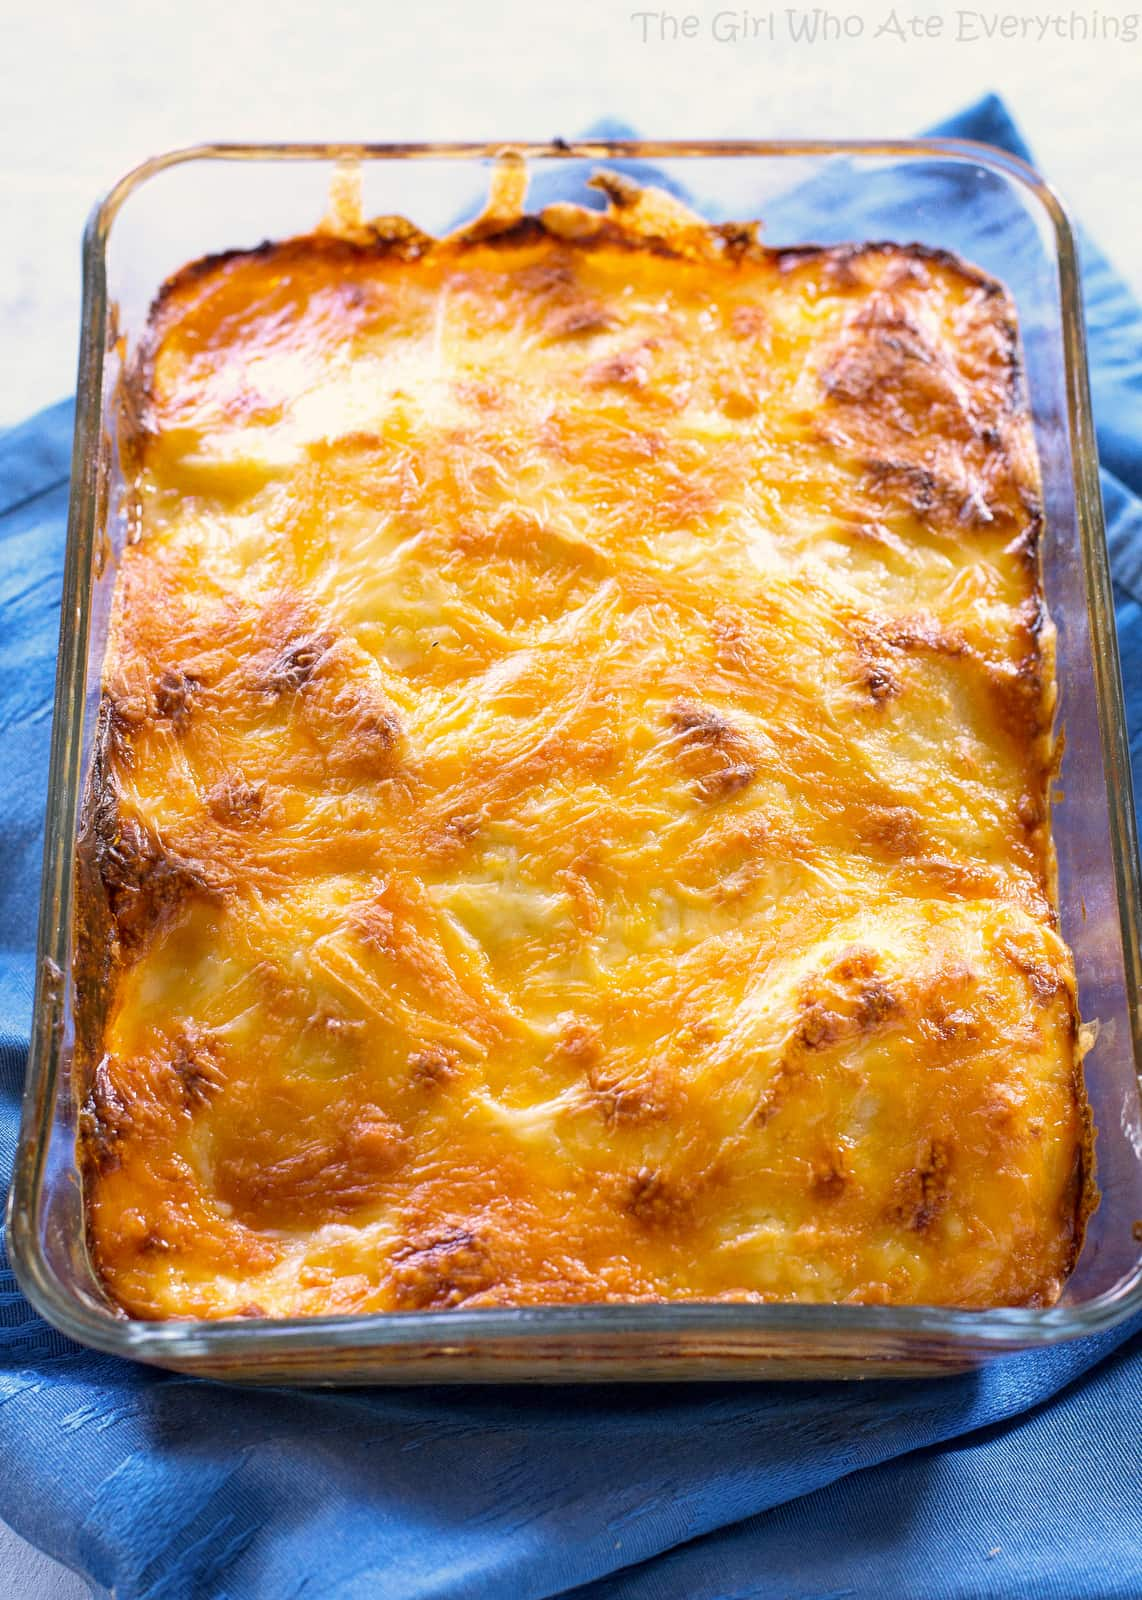 Scalloped Potatoes baked in a dish